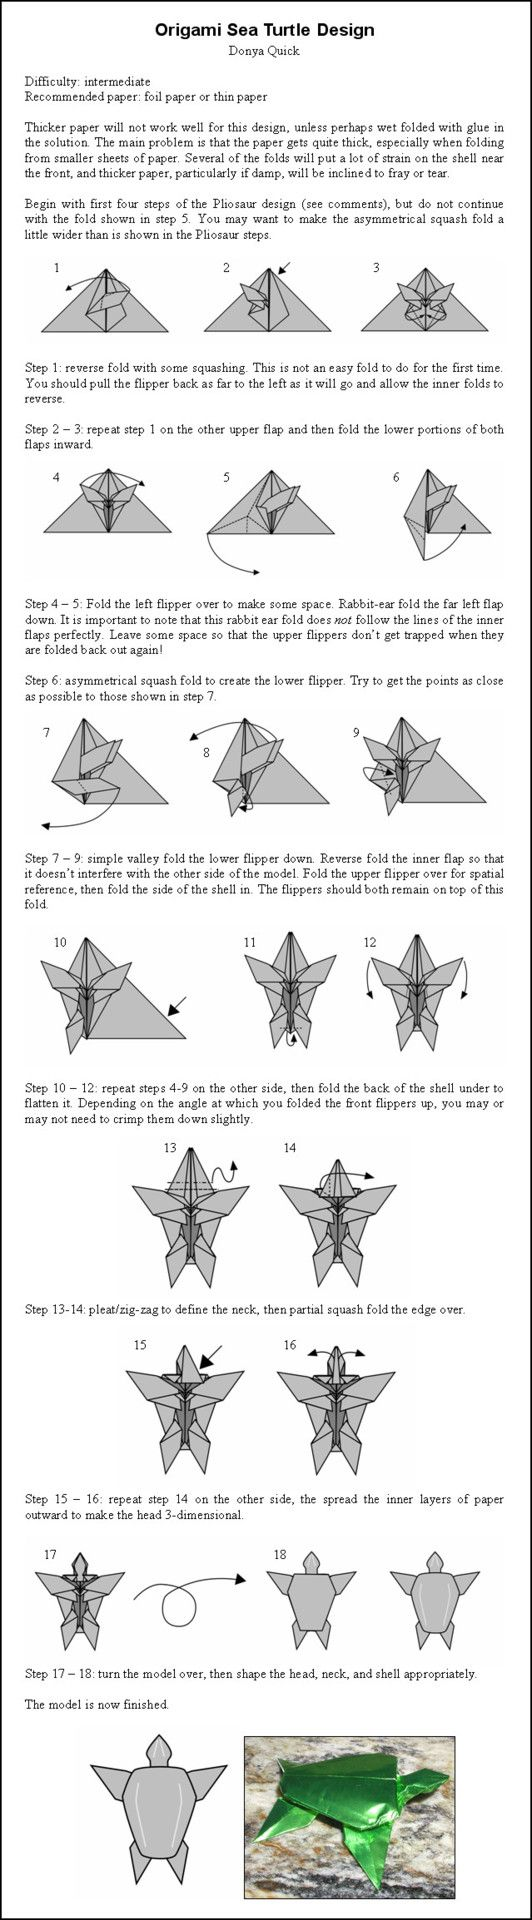 Origami Instructions: Turtle